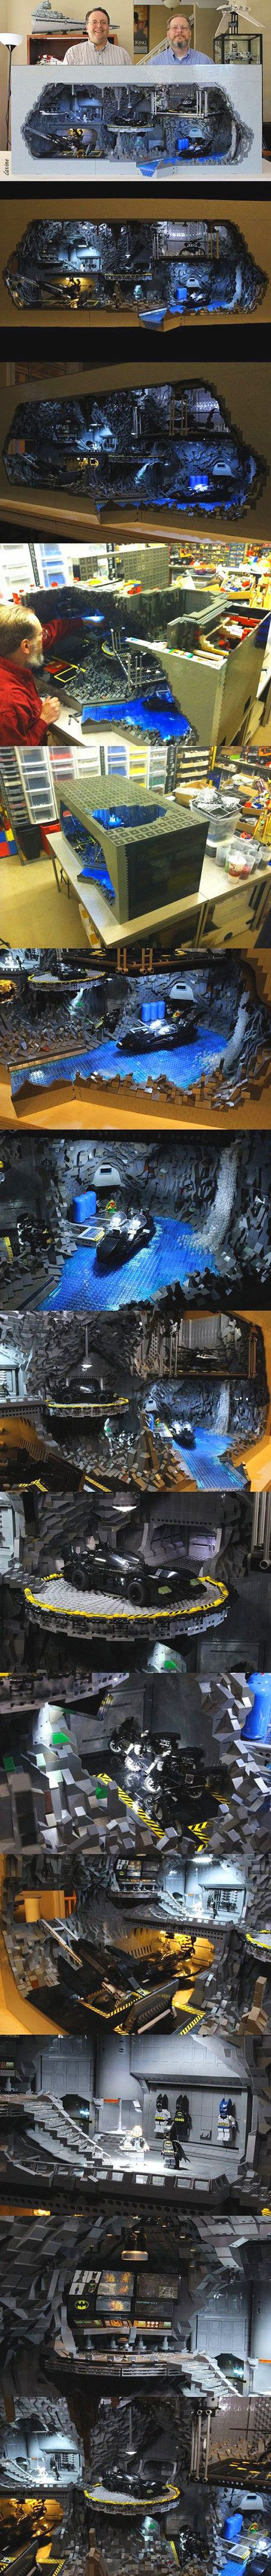 real geeks go all out - This LEGO master recreated Batmans Batcave with 20,000 bricks.